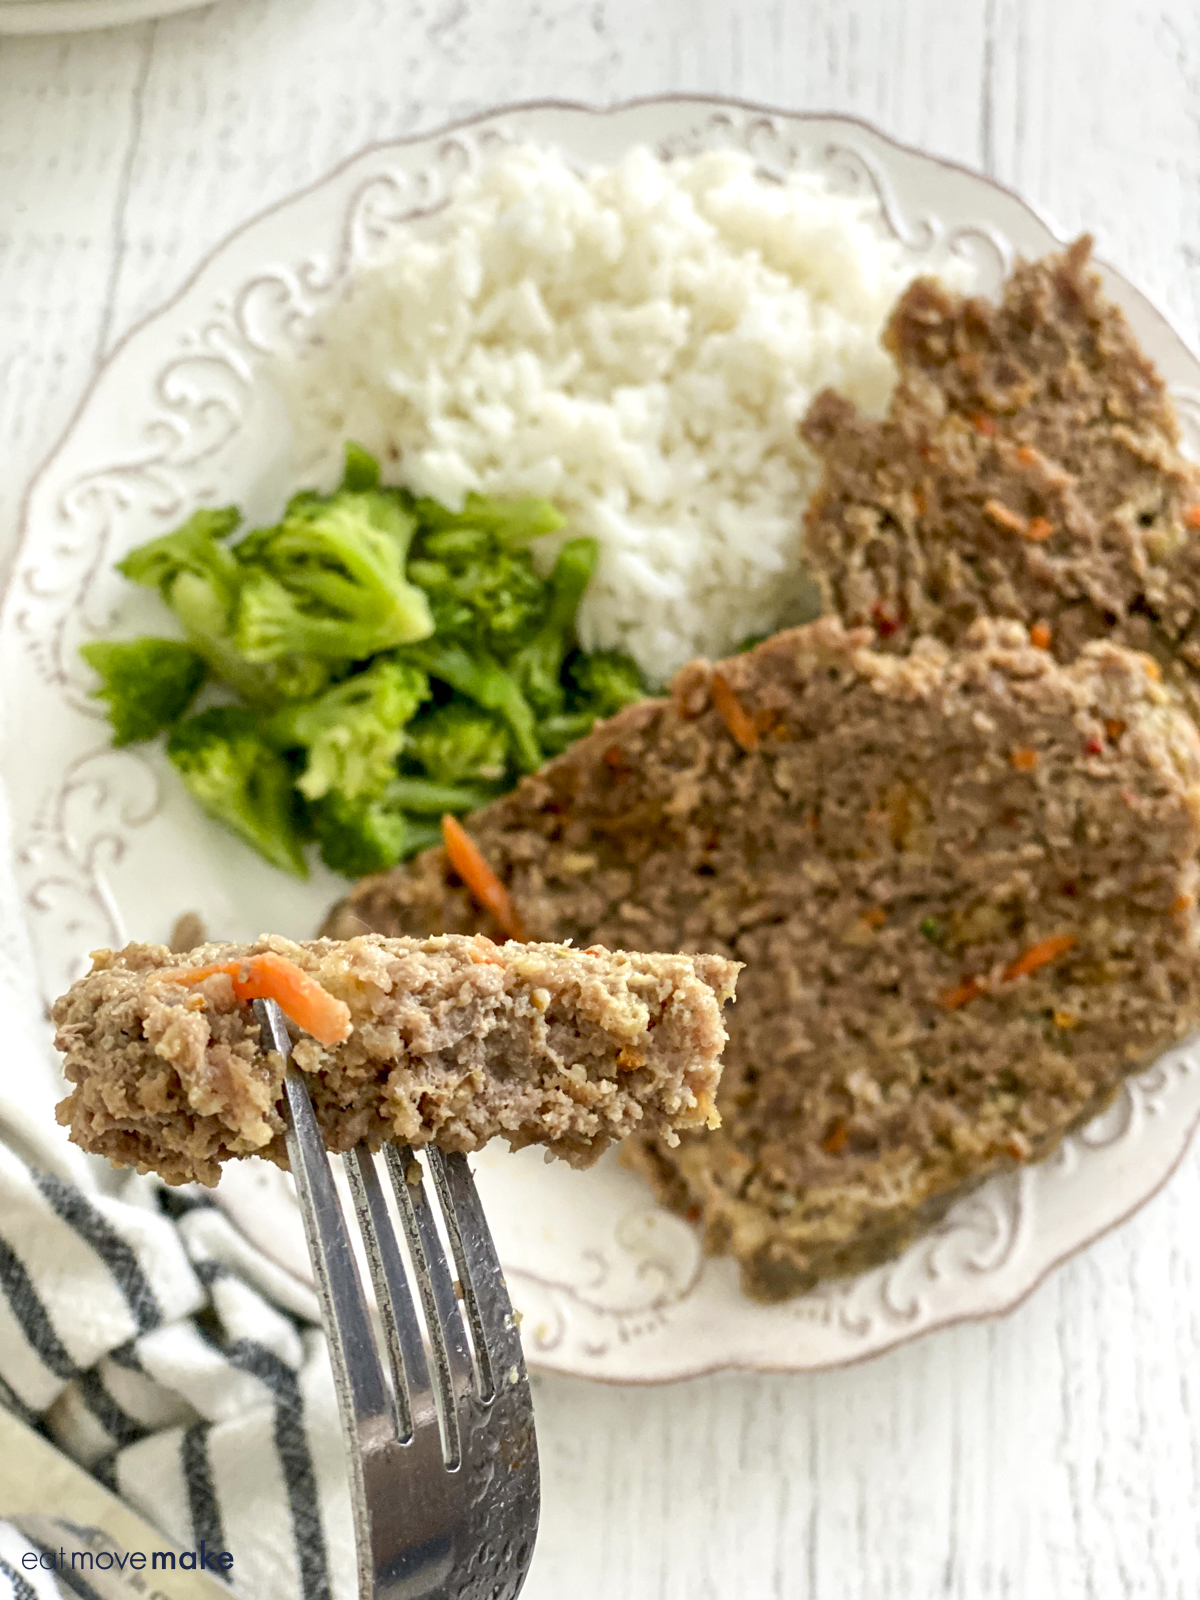 forkful of meatloaf with two slices of meatloaf, broccoli and rice on white plate on white table